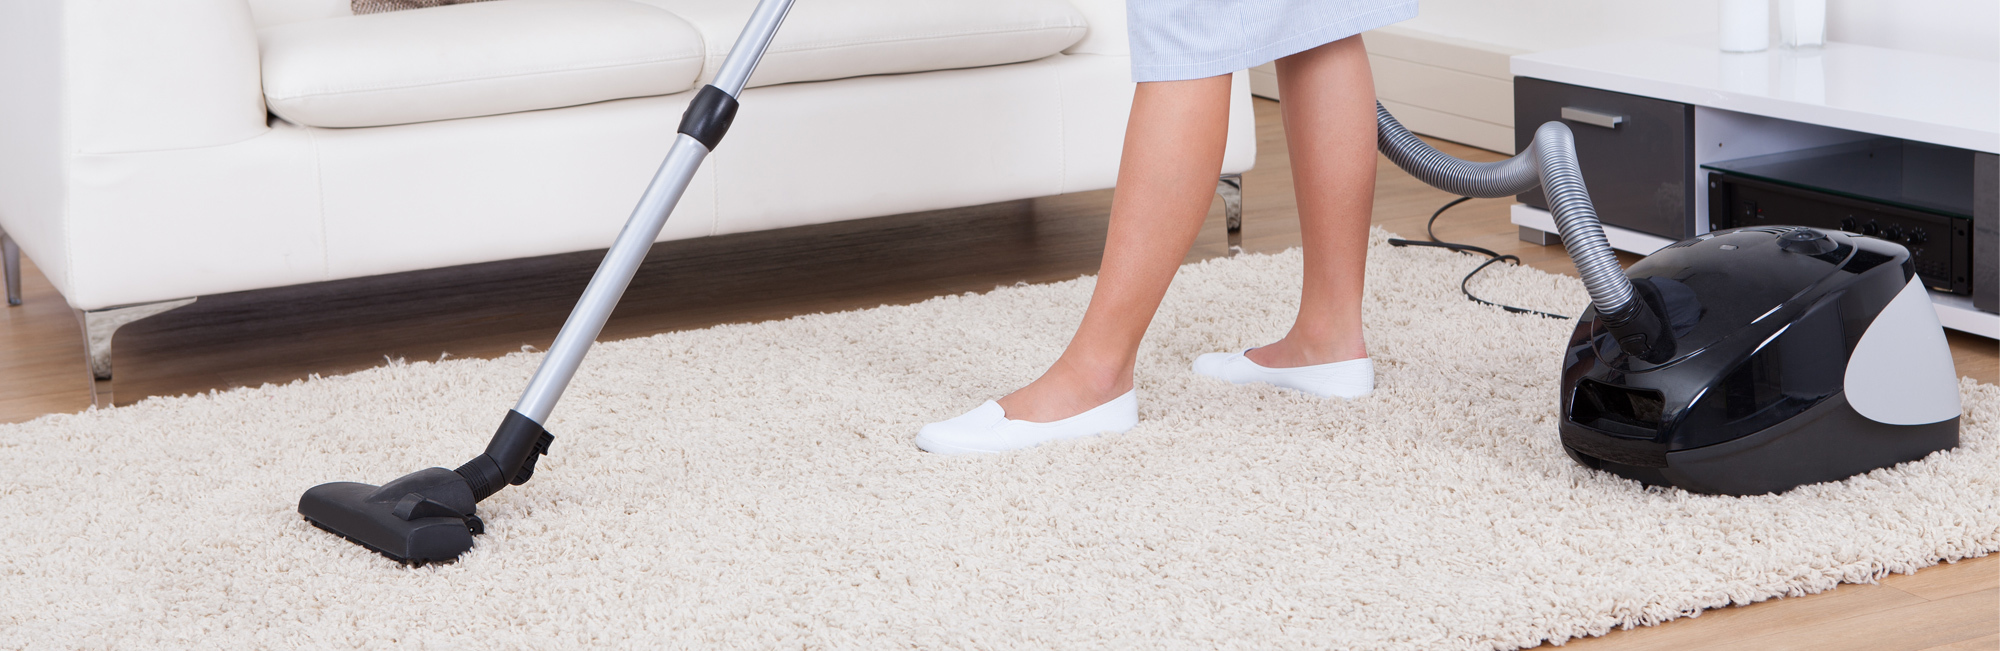 Carpet cleaning service in Honolulu, HI